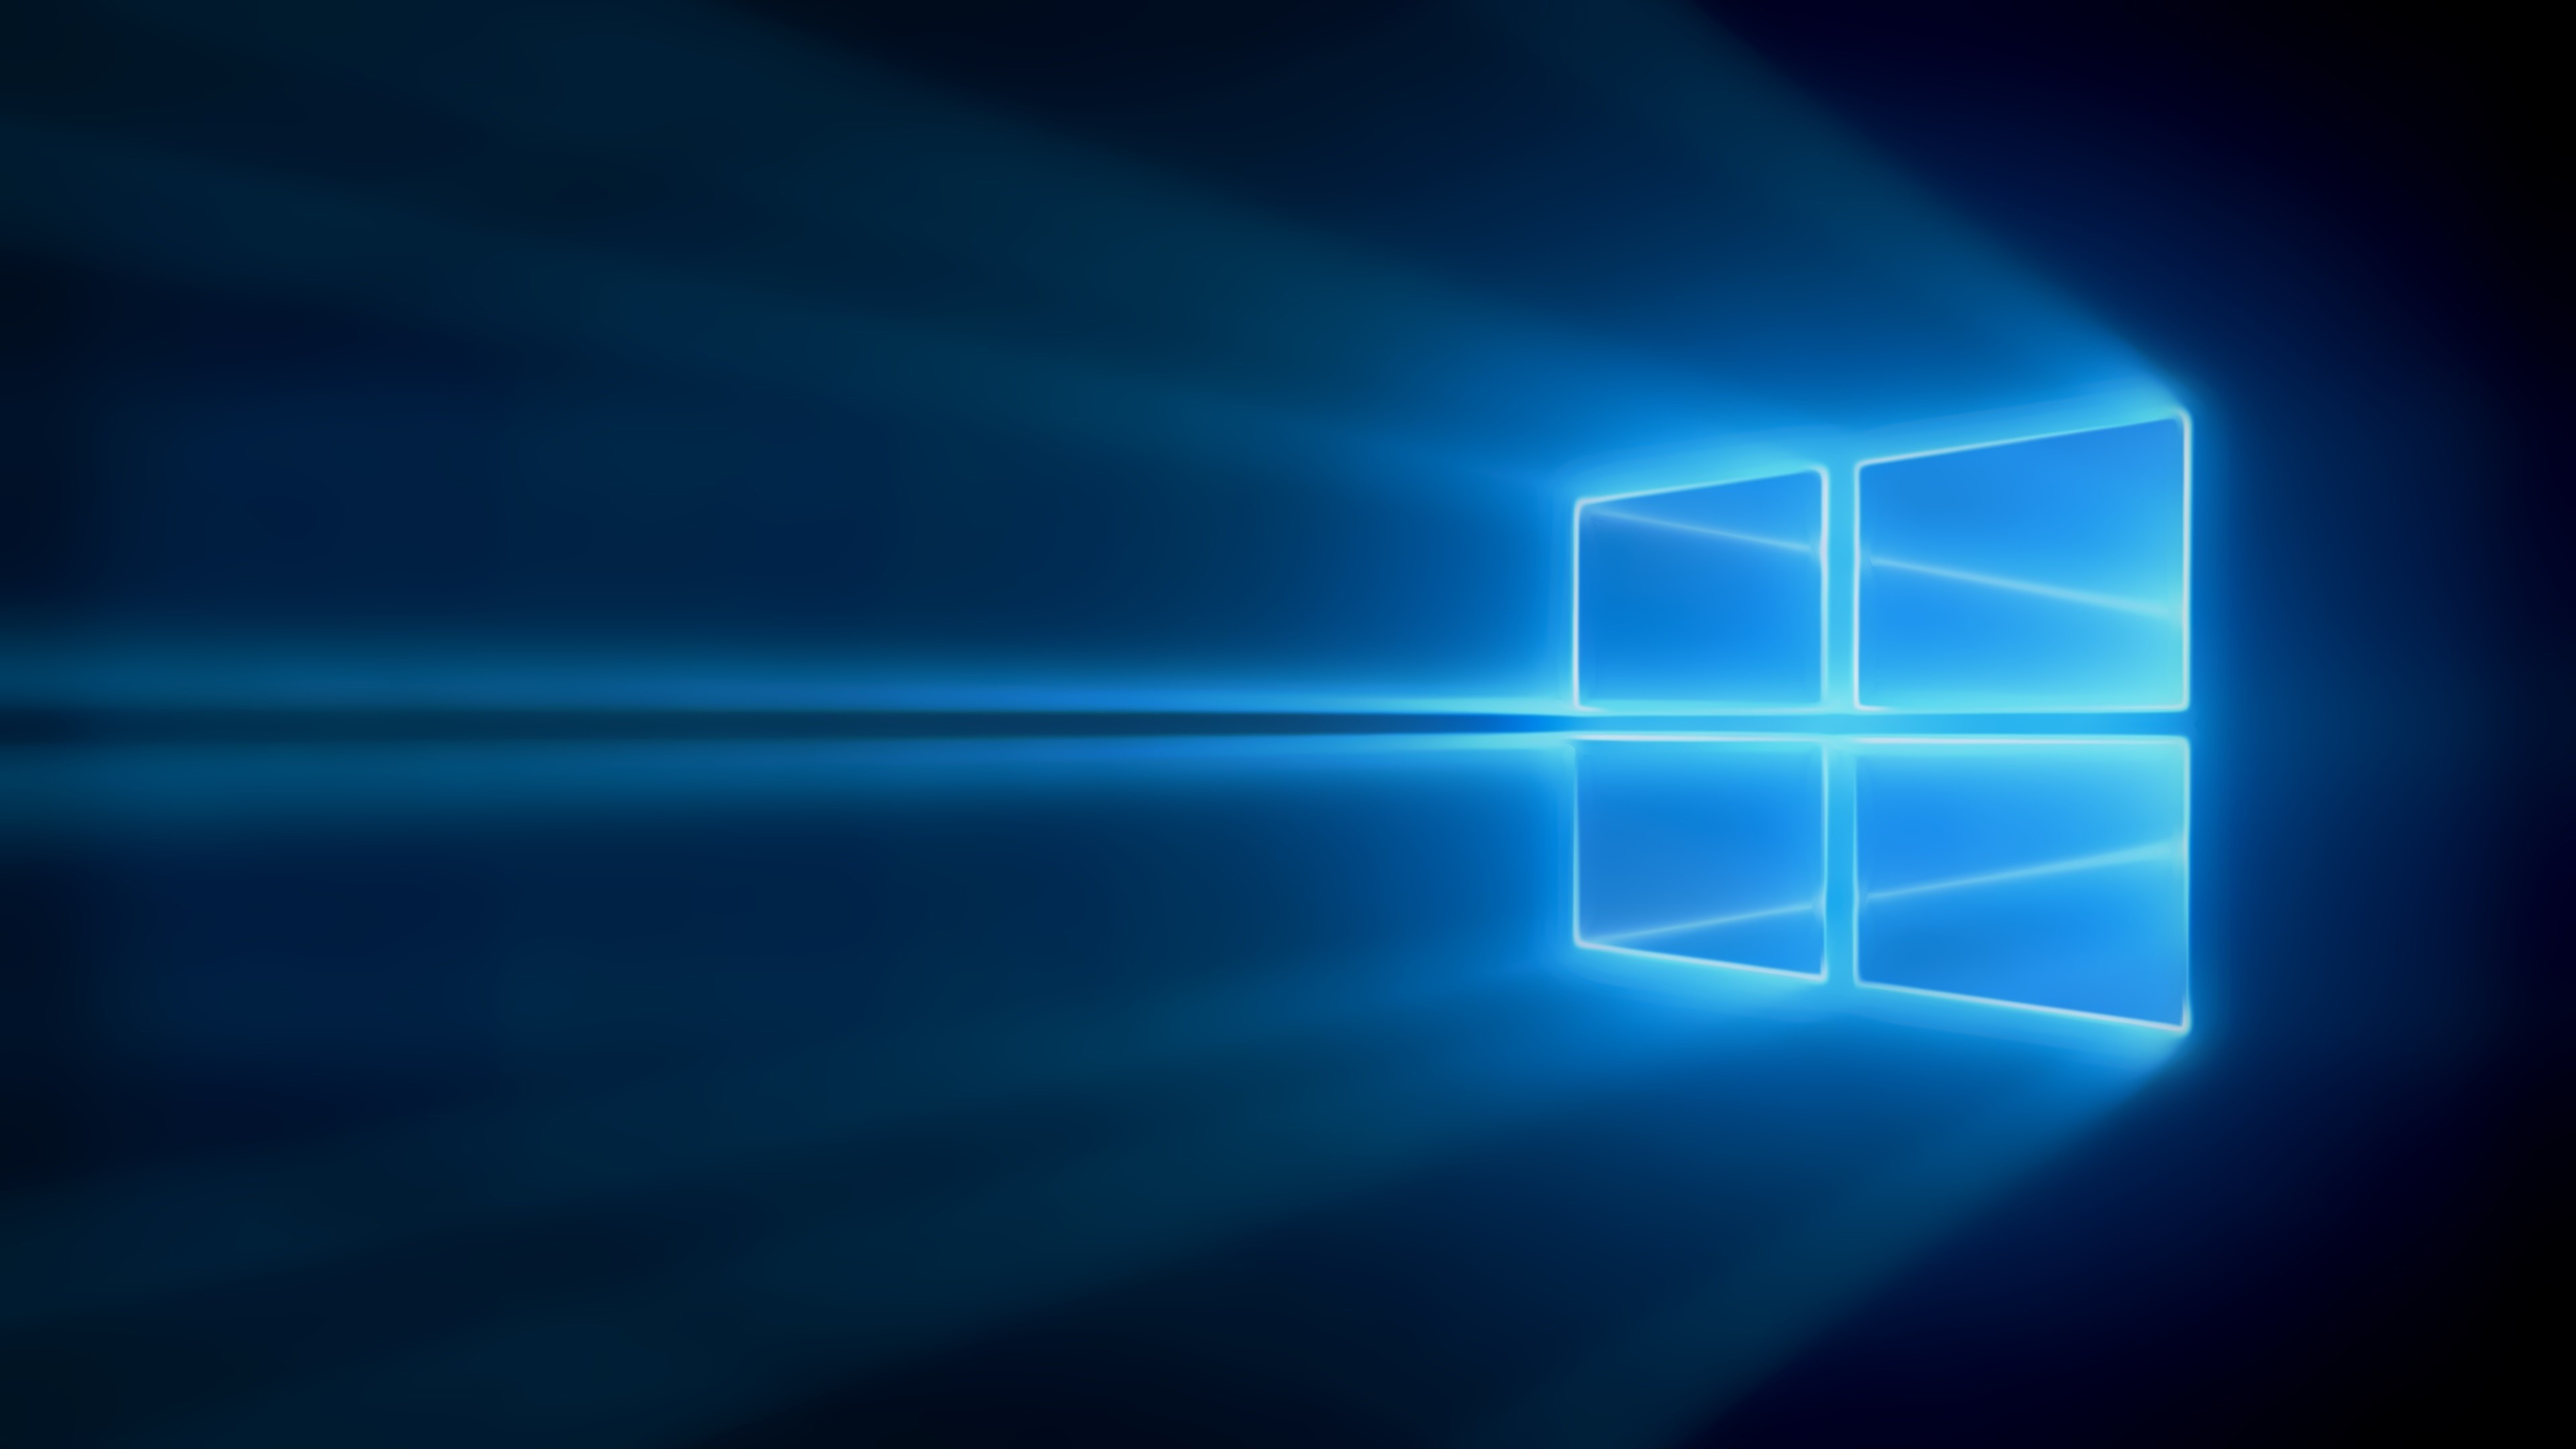 windows 10 nach update langsam 2019